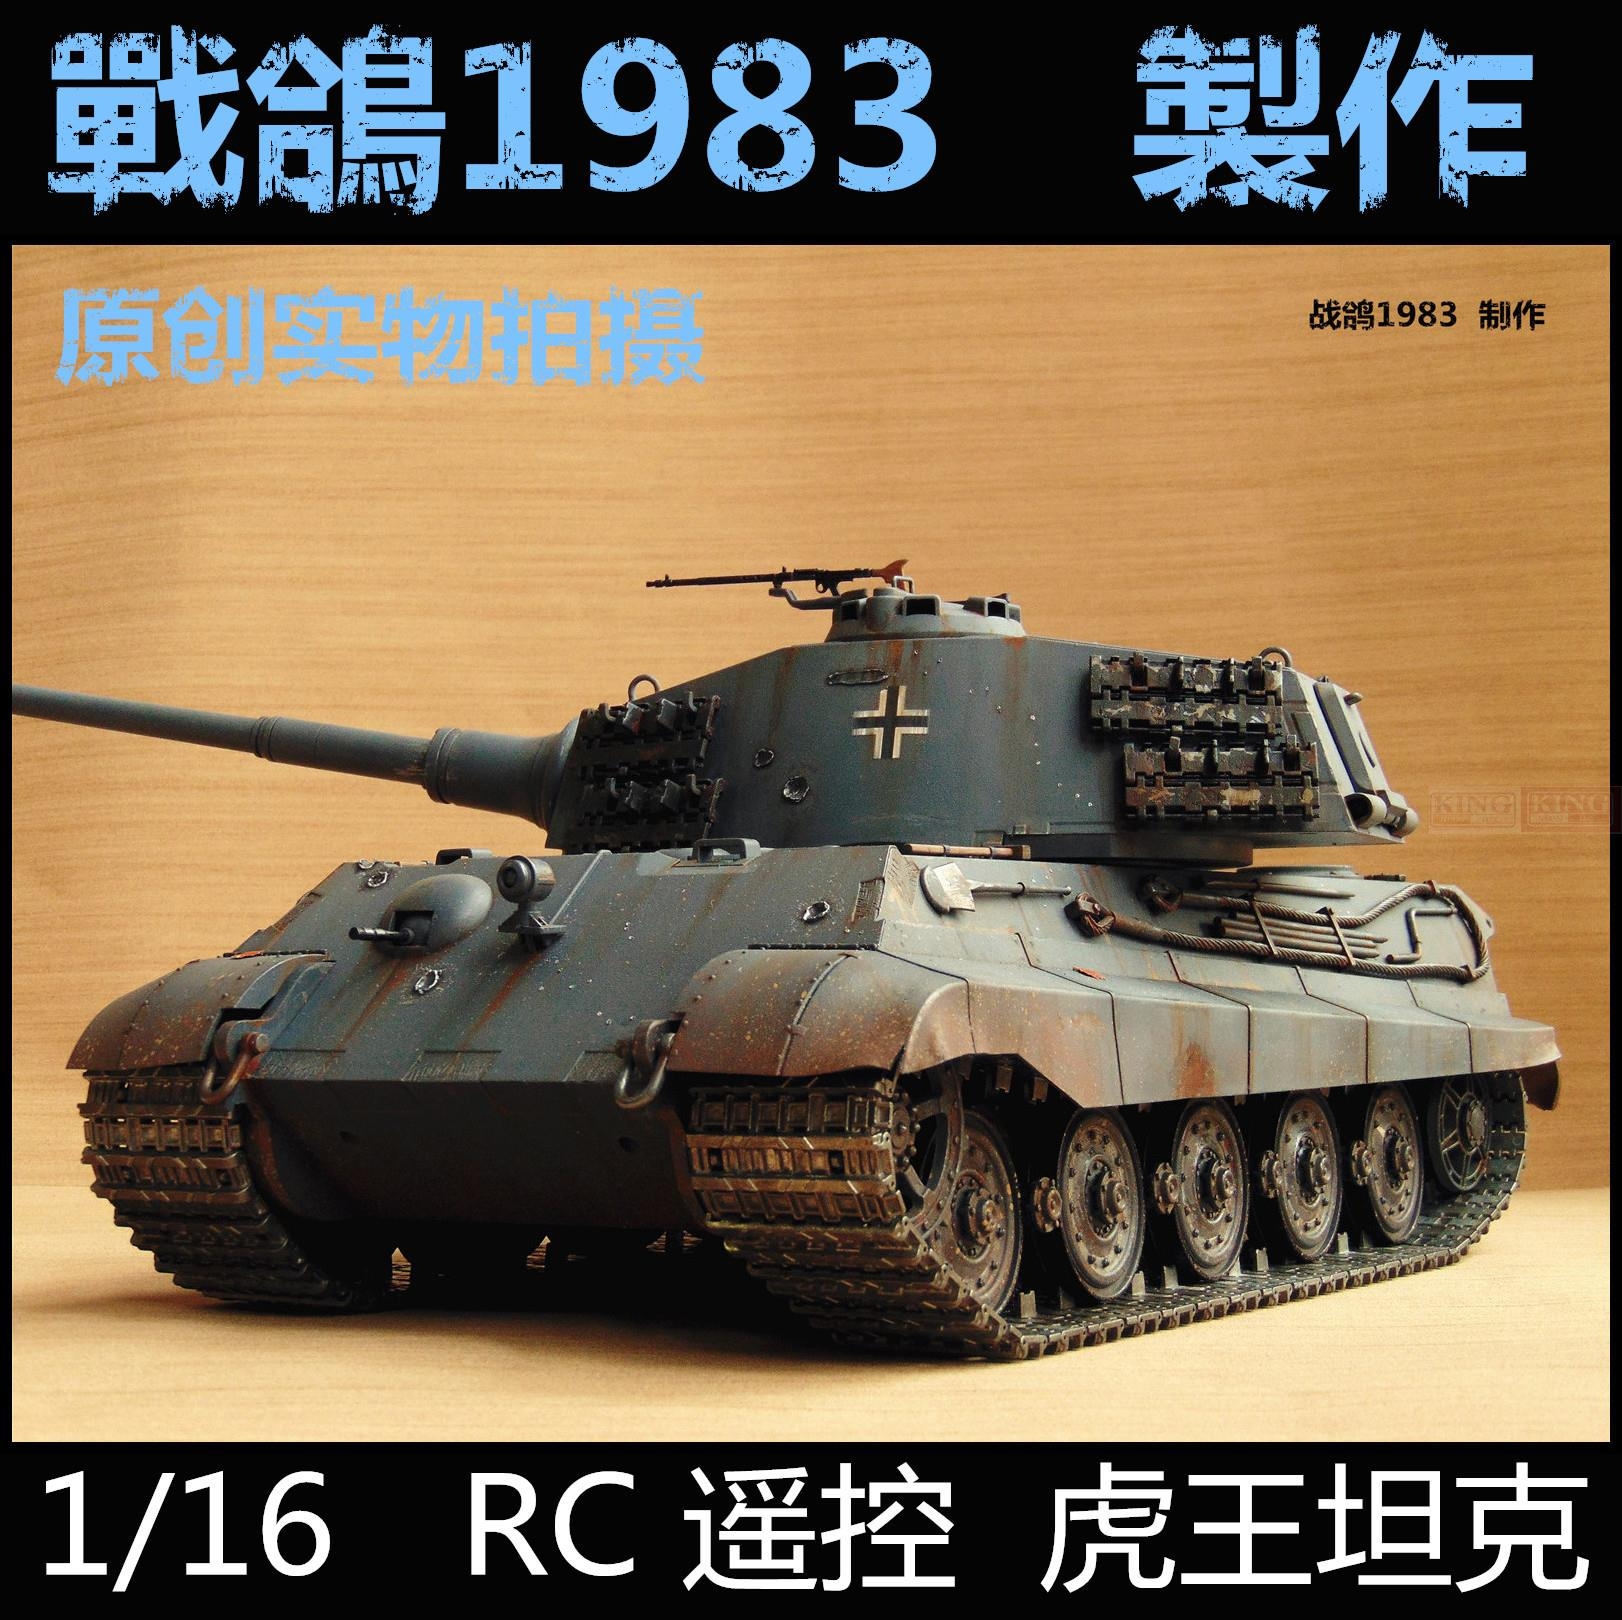 KNL HOBBY 1:16 HENG LONG remote control tank model Tiger 2RC foundry heavy coating of paint to do the old upgrade knl hobby voyager model pe35418 m1a1 tusk1 ubilan